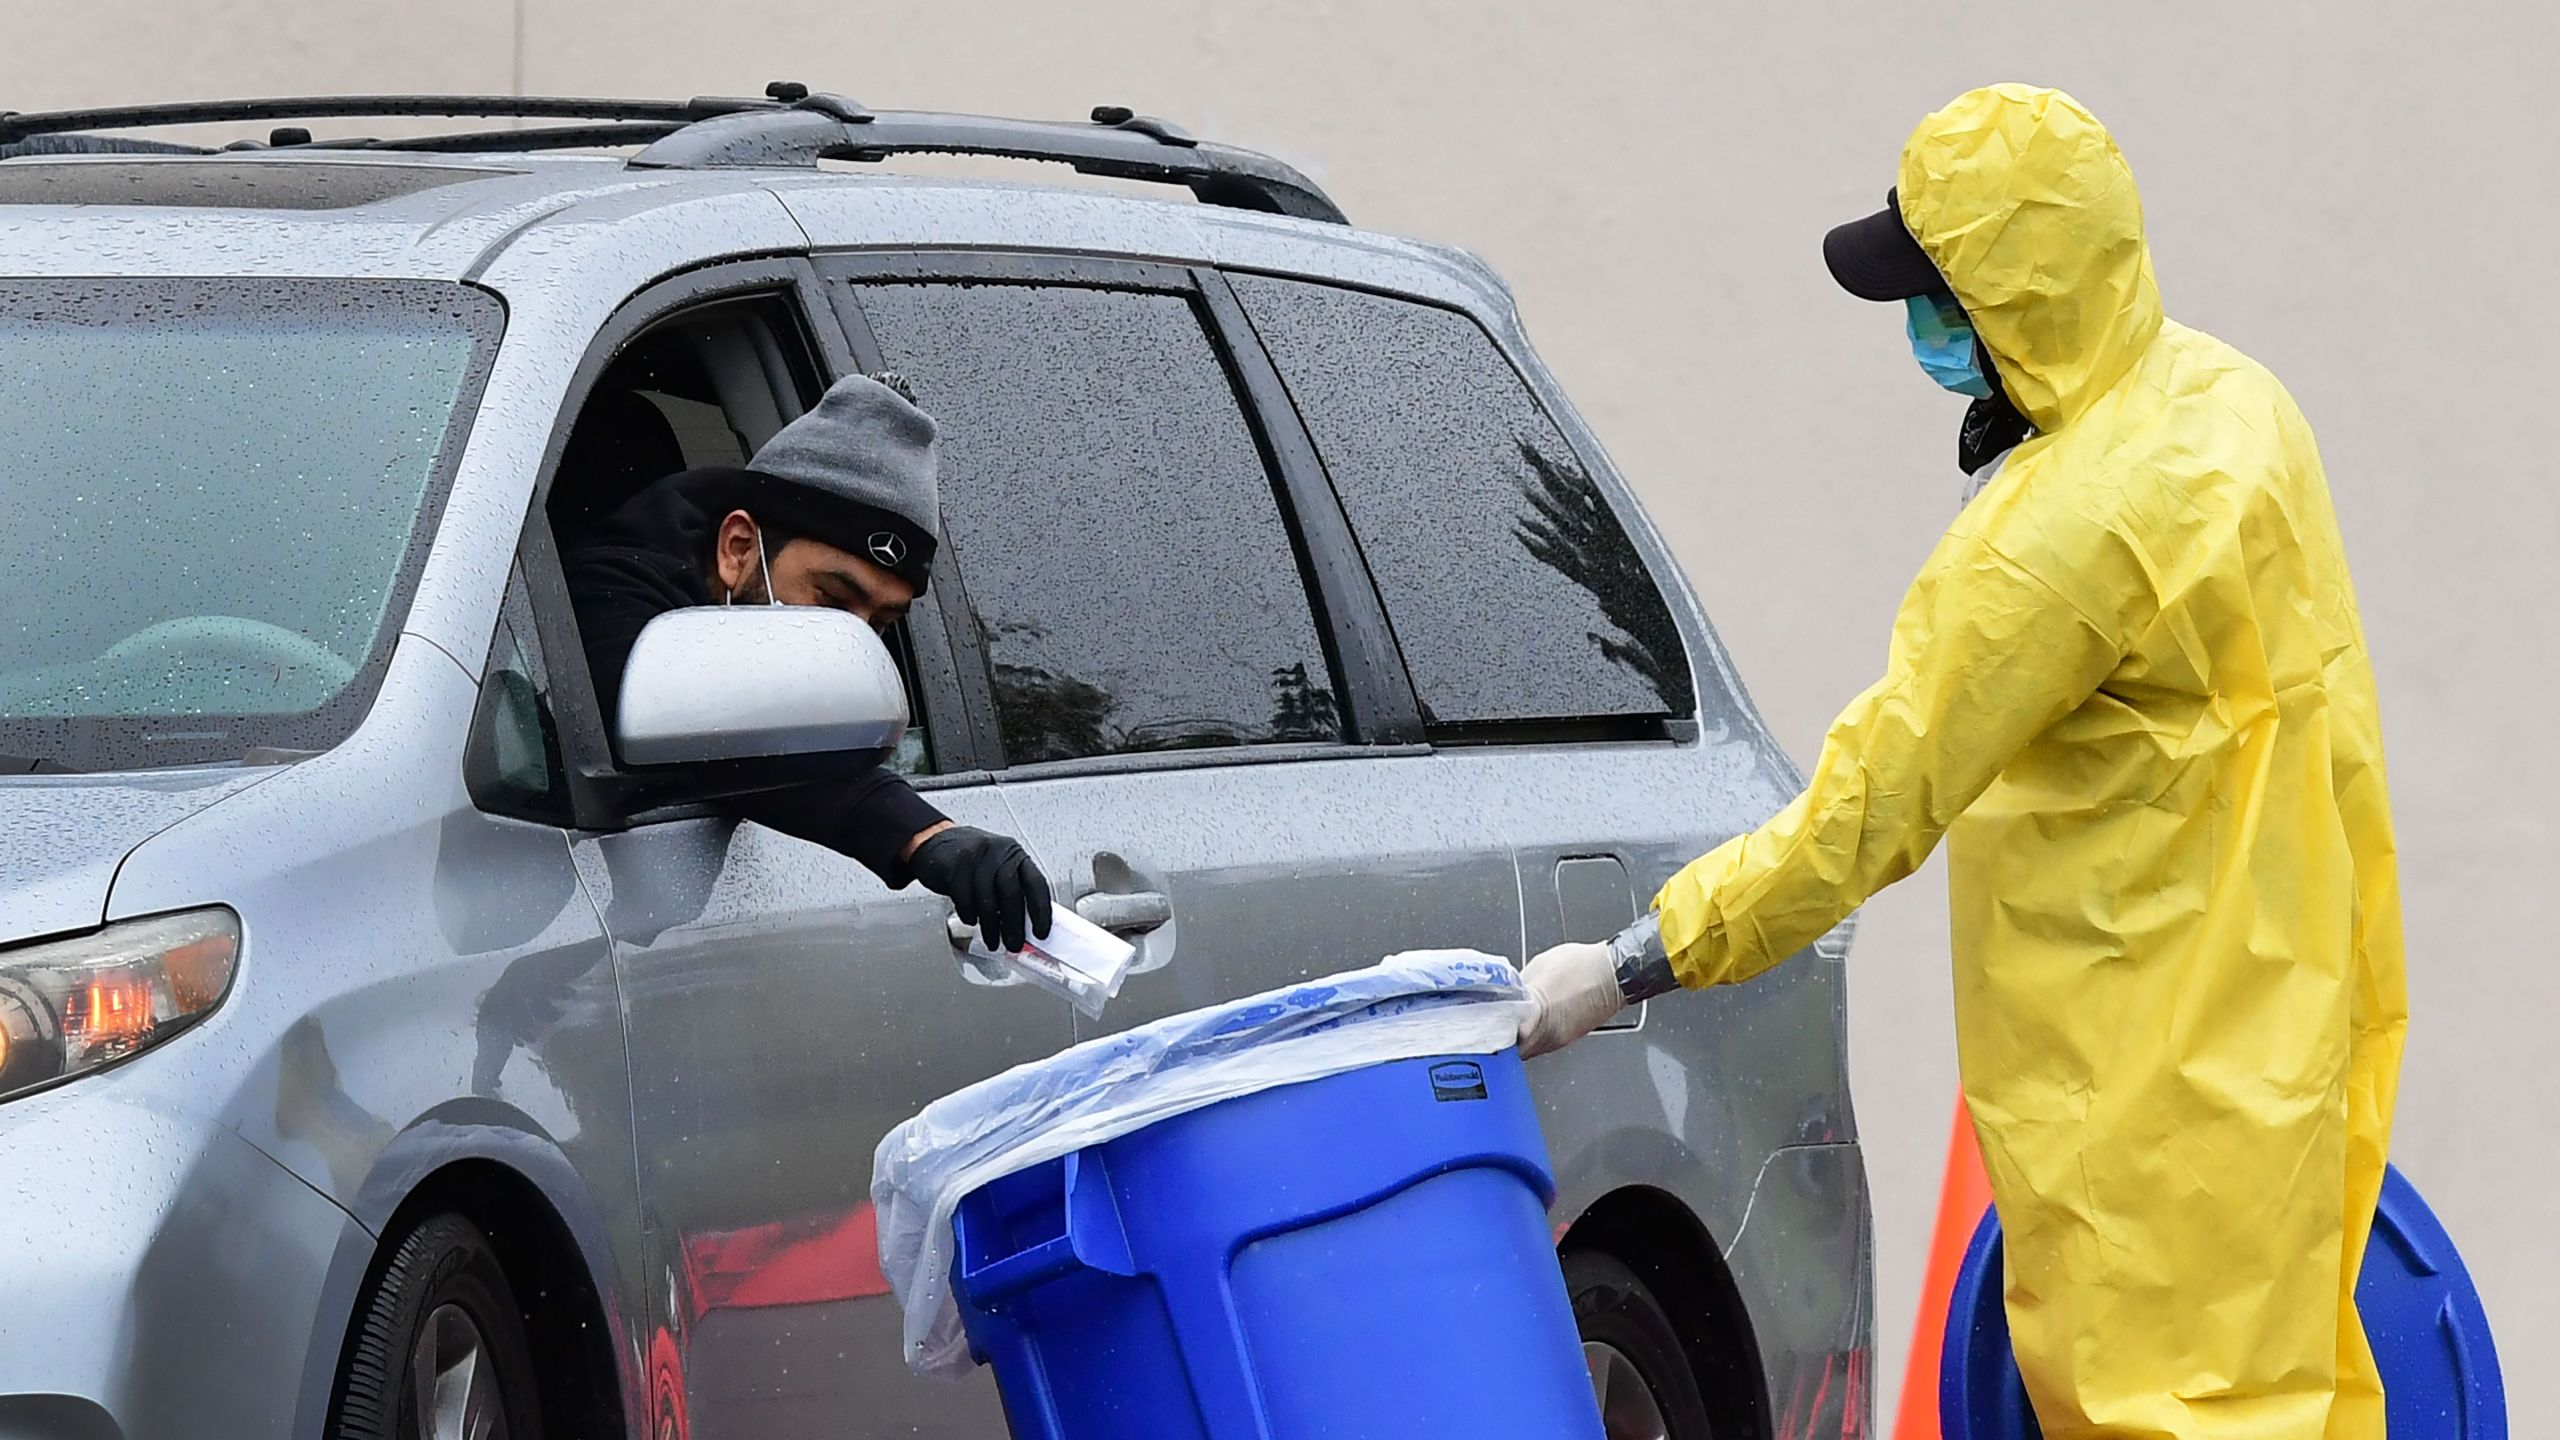 A driver drops his COVID-19 test into a bin at a coronavirus mobile testing site at Lincoln Park in Los Angeles on April 10, 2020. (Credit: Frederic J. Brown / AFP / Getty Images)